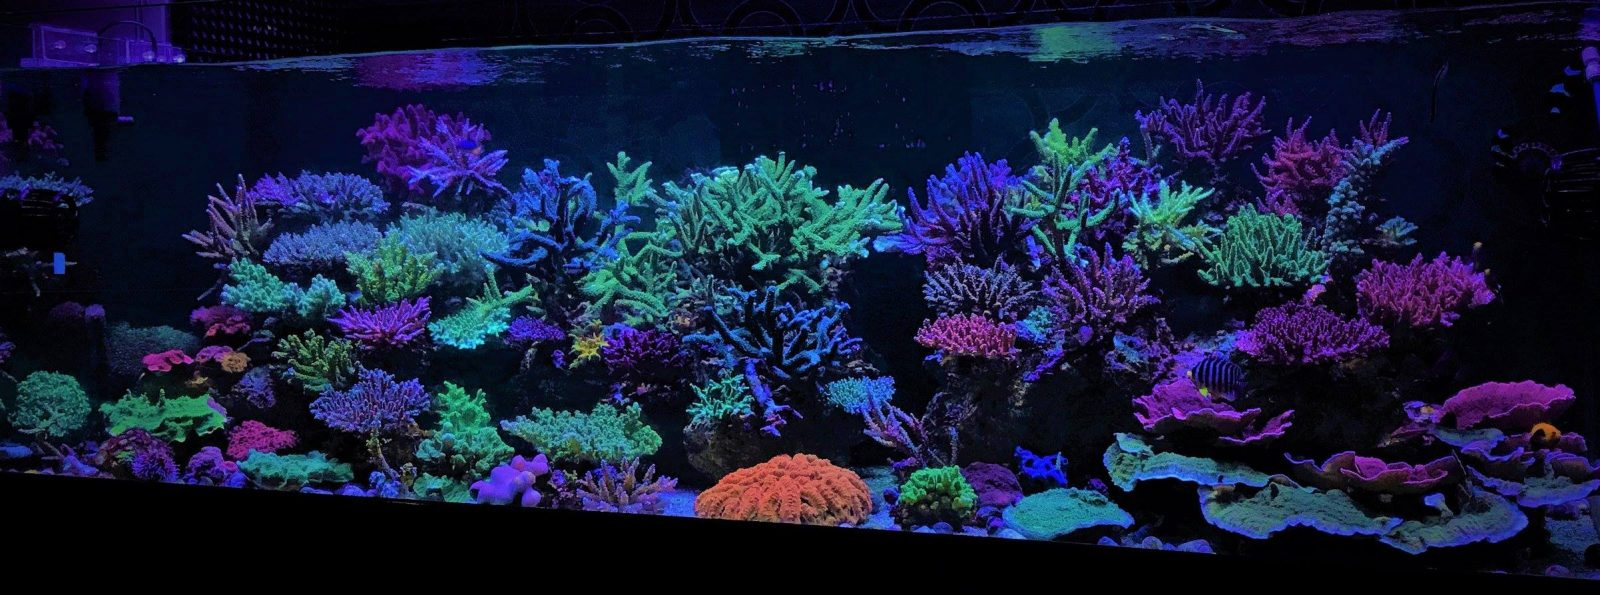 Aquascape Water aquarium landscape